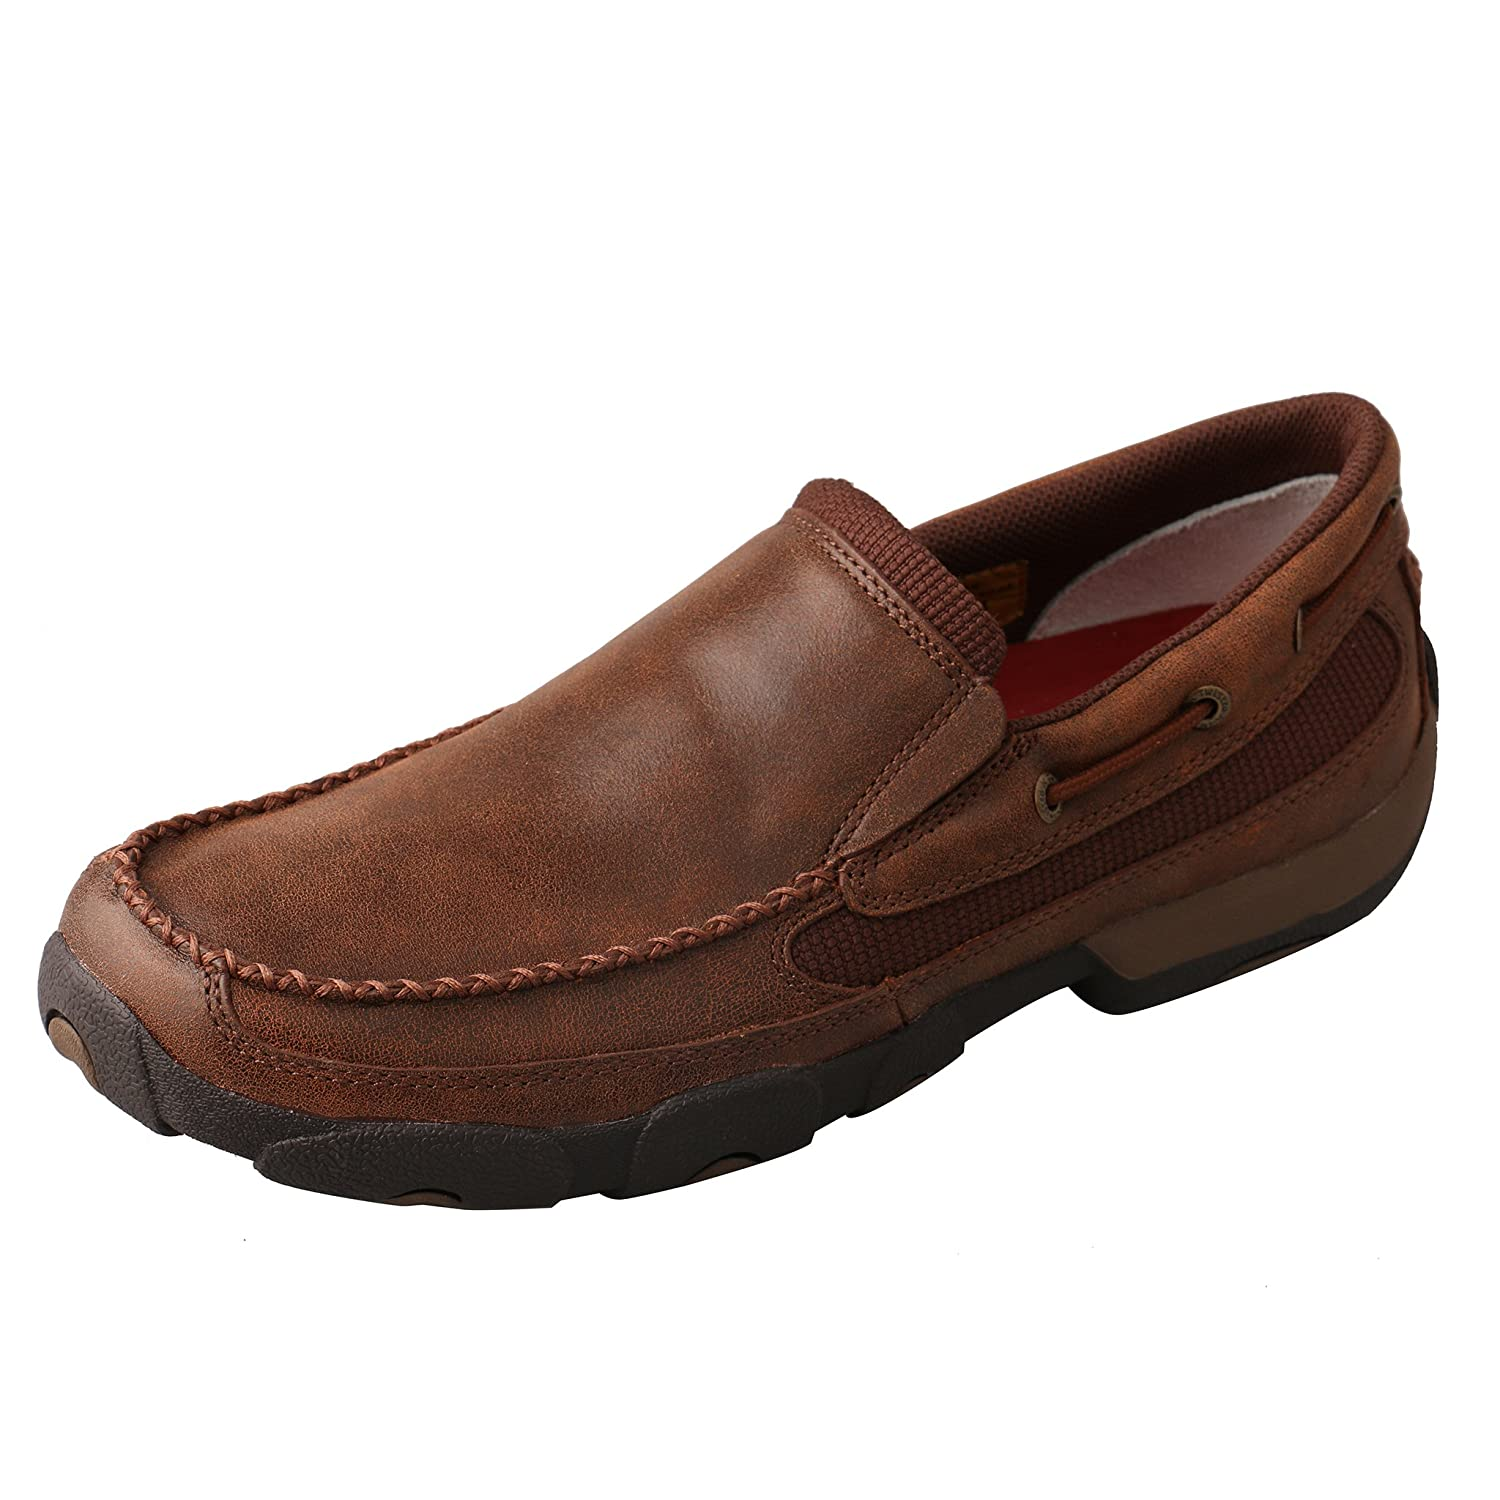 Brown Twisted X Mens Leather Slip-On Rubber Sole Roune Toe Driving Moccasins